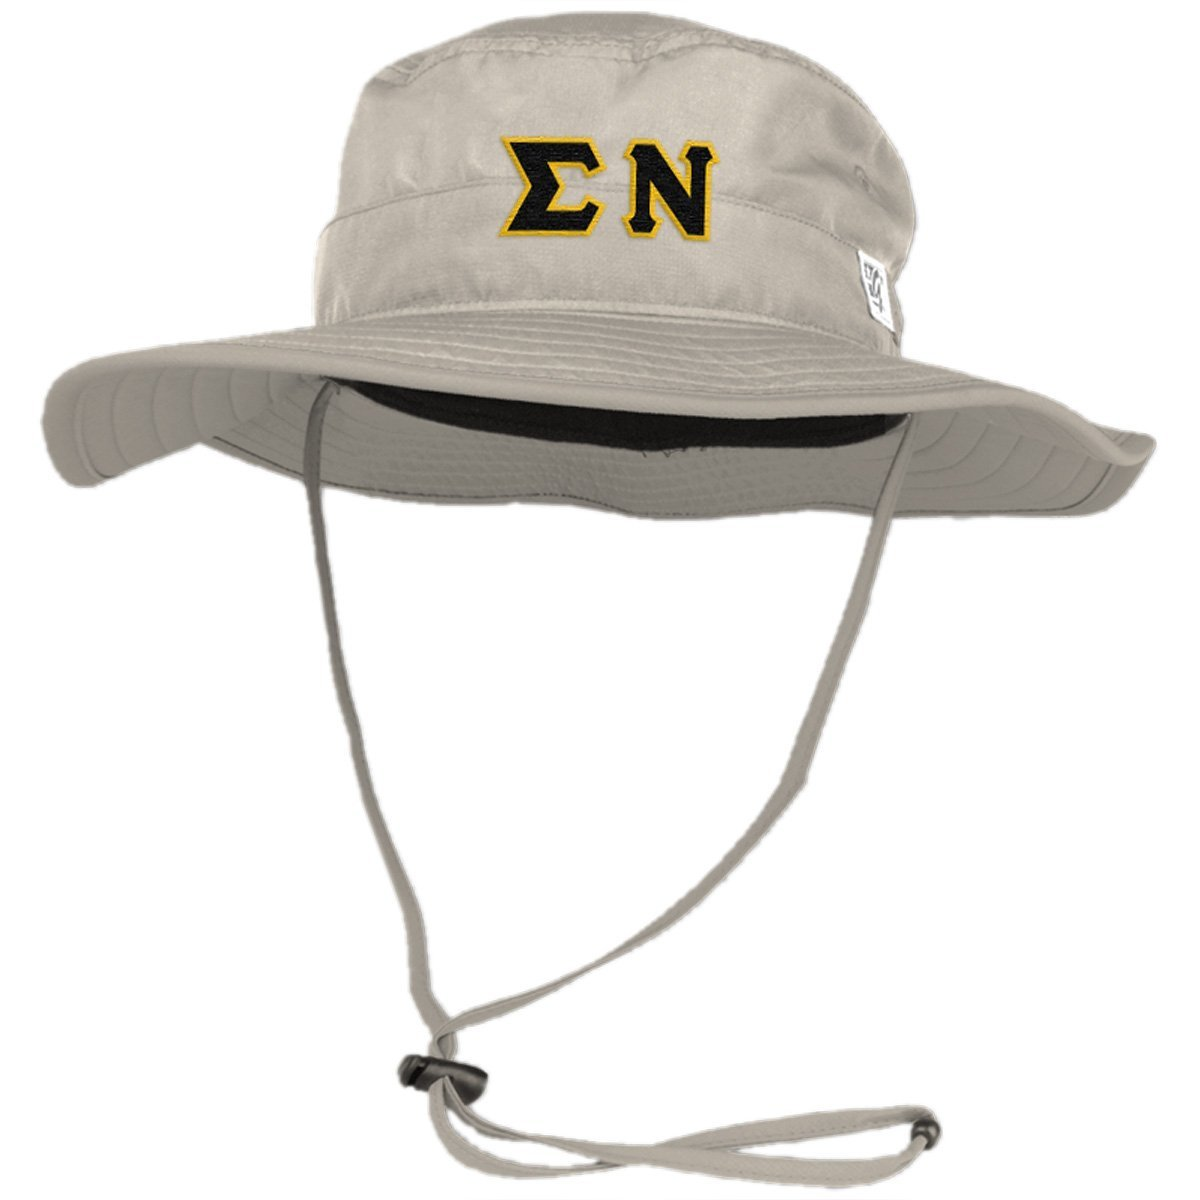 Sigma Nu Boonie Hat By The Game 694247